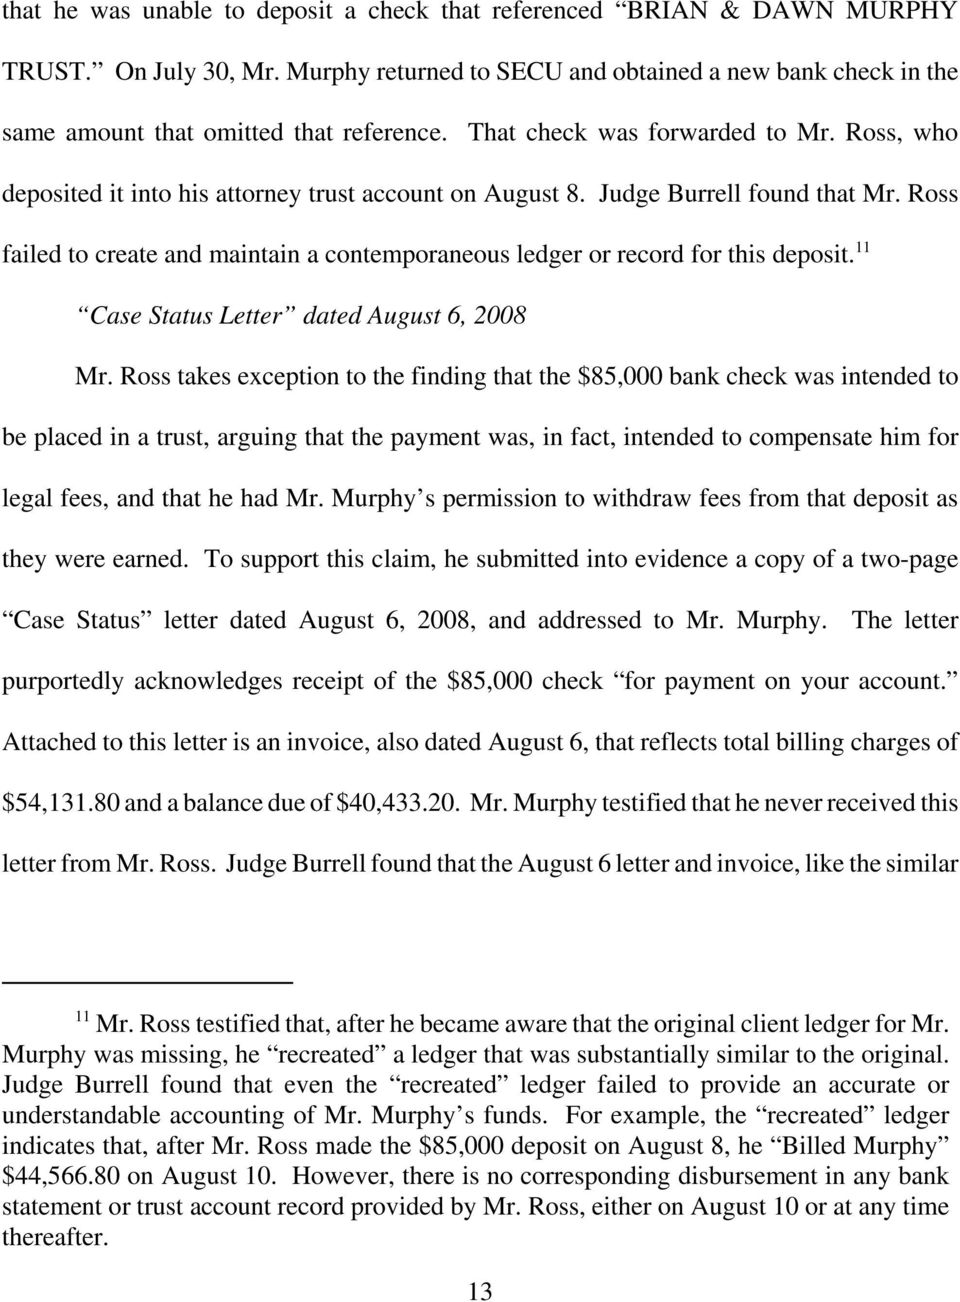 Ross failed to create and maintain a contemporaneous ledger or record for this deposit. 11 Case Status Letter dated August 6, 2008 Mr.